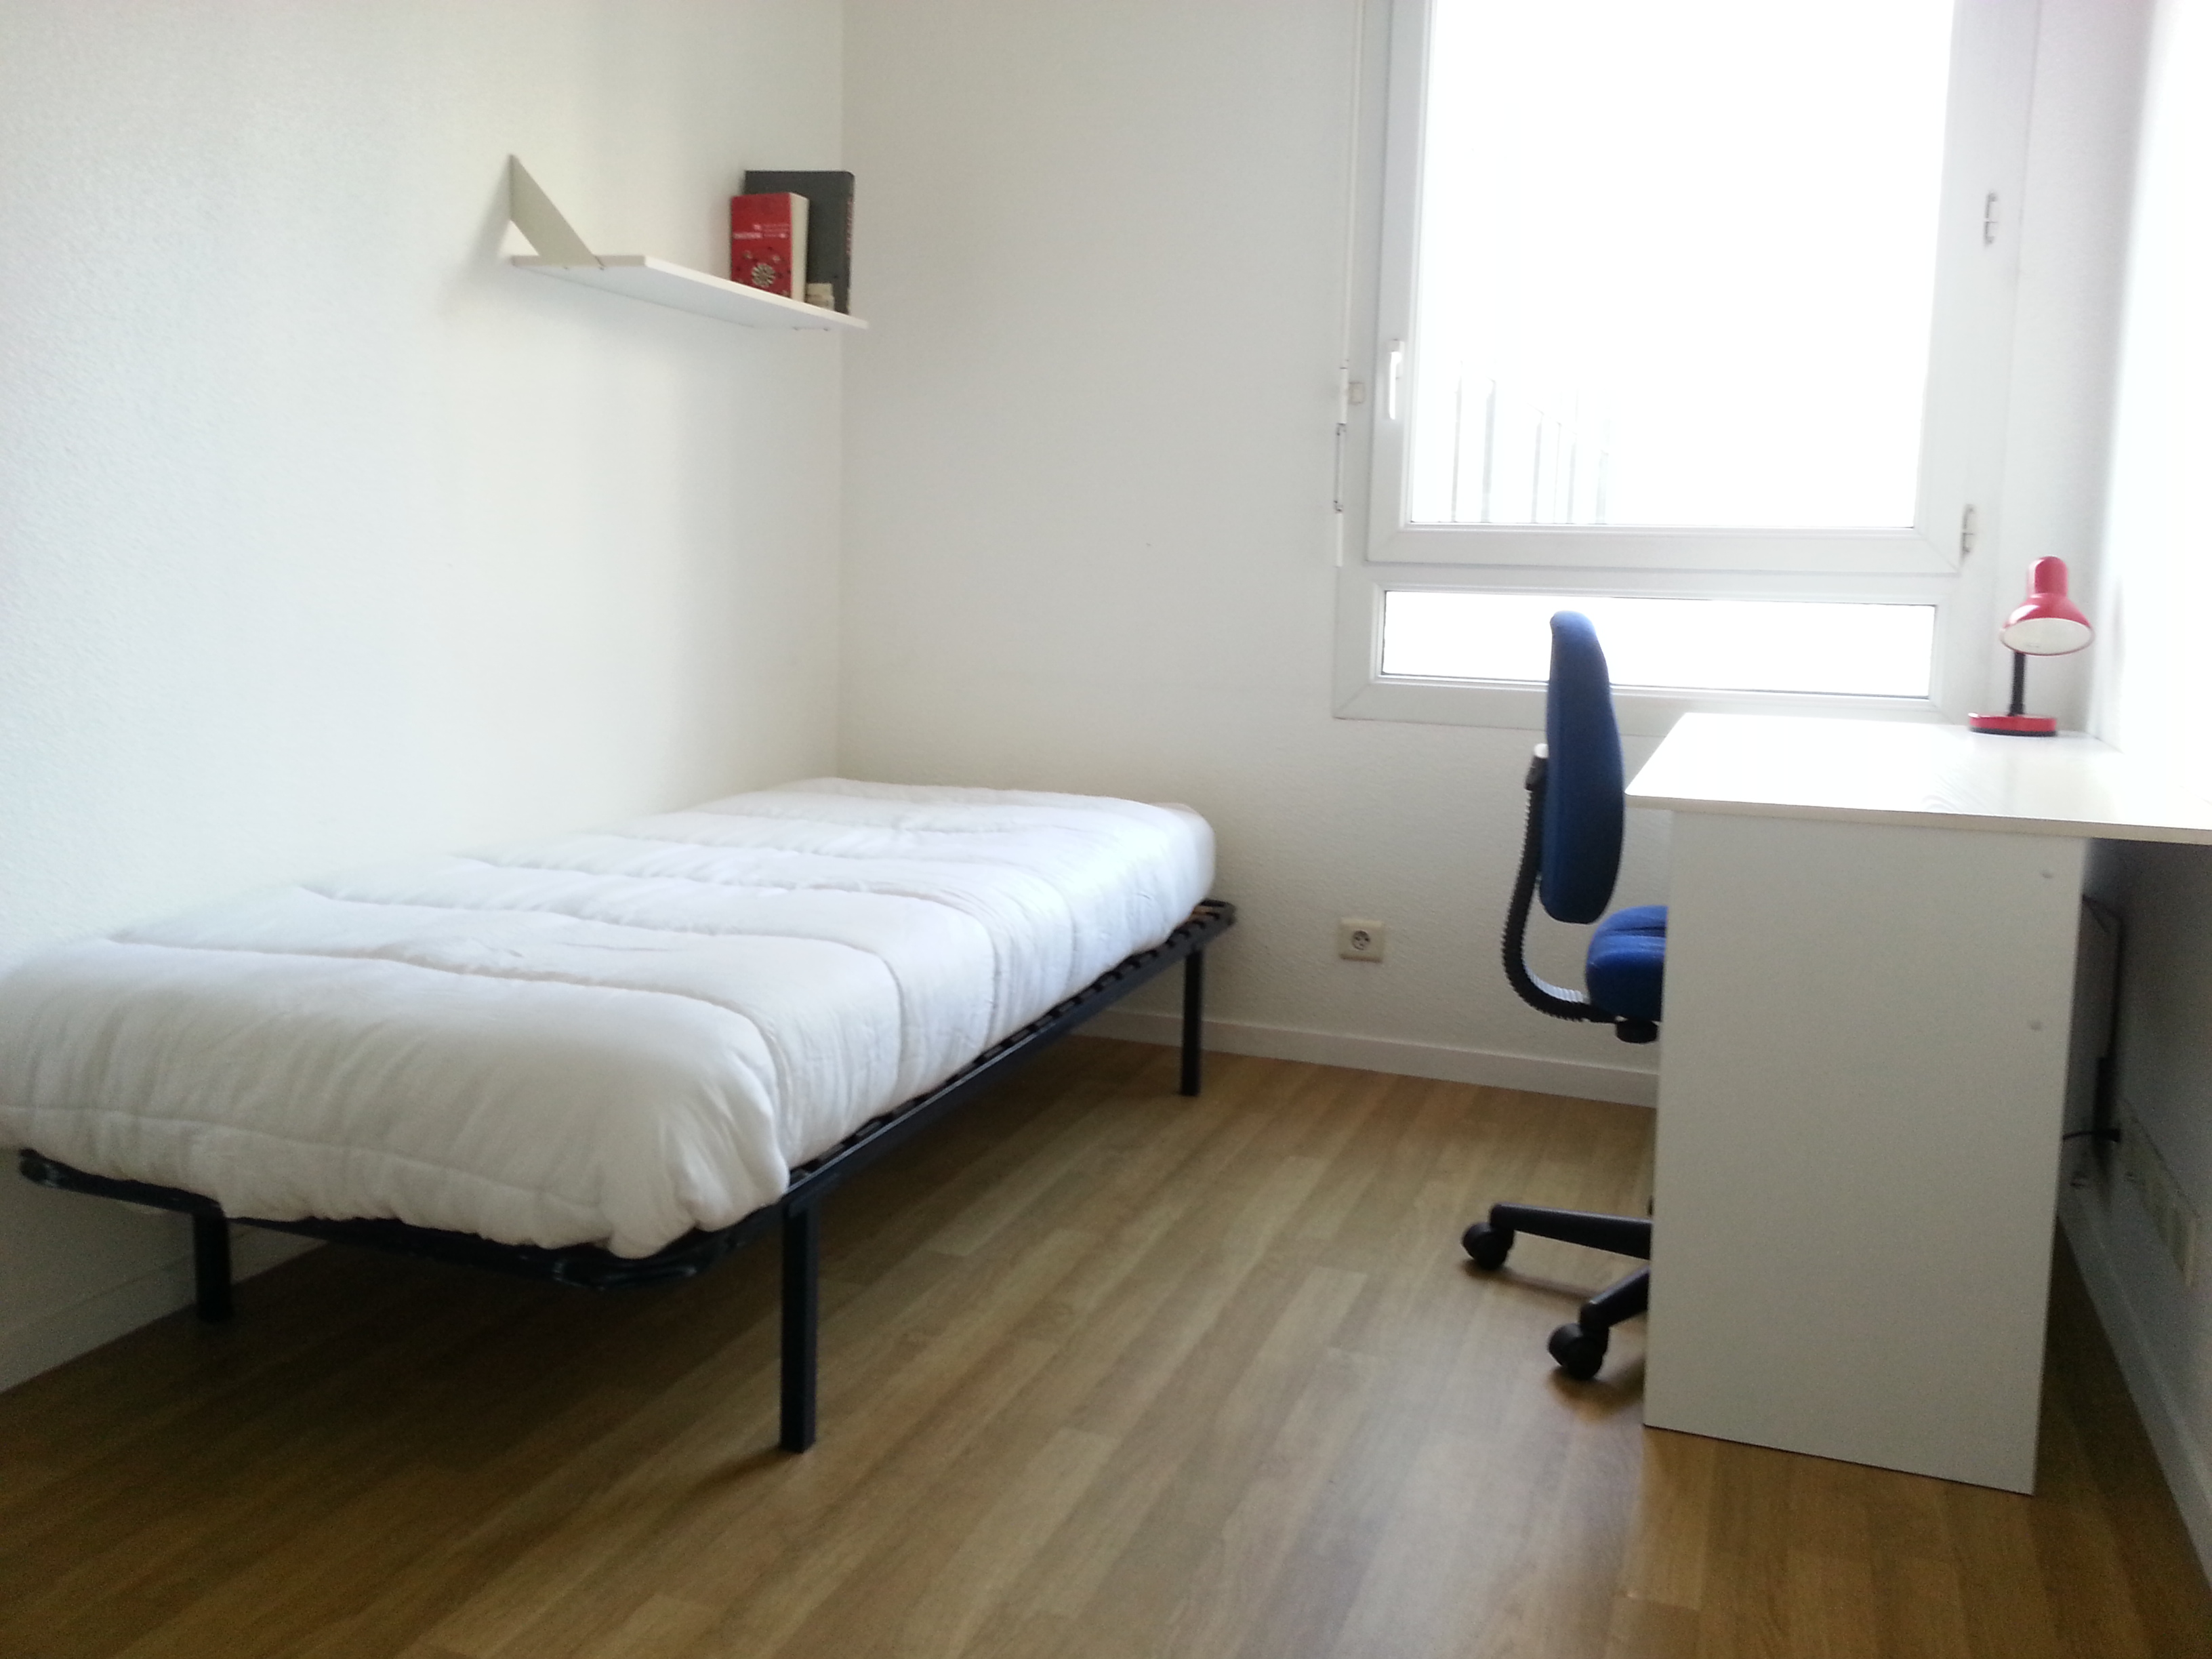 Location studio tudiant paris appartement tudiant paris r sidence tudiante paris et idf - Location meuble paris etudiant ...